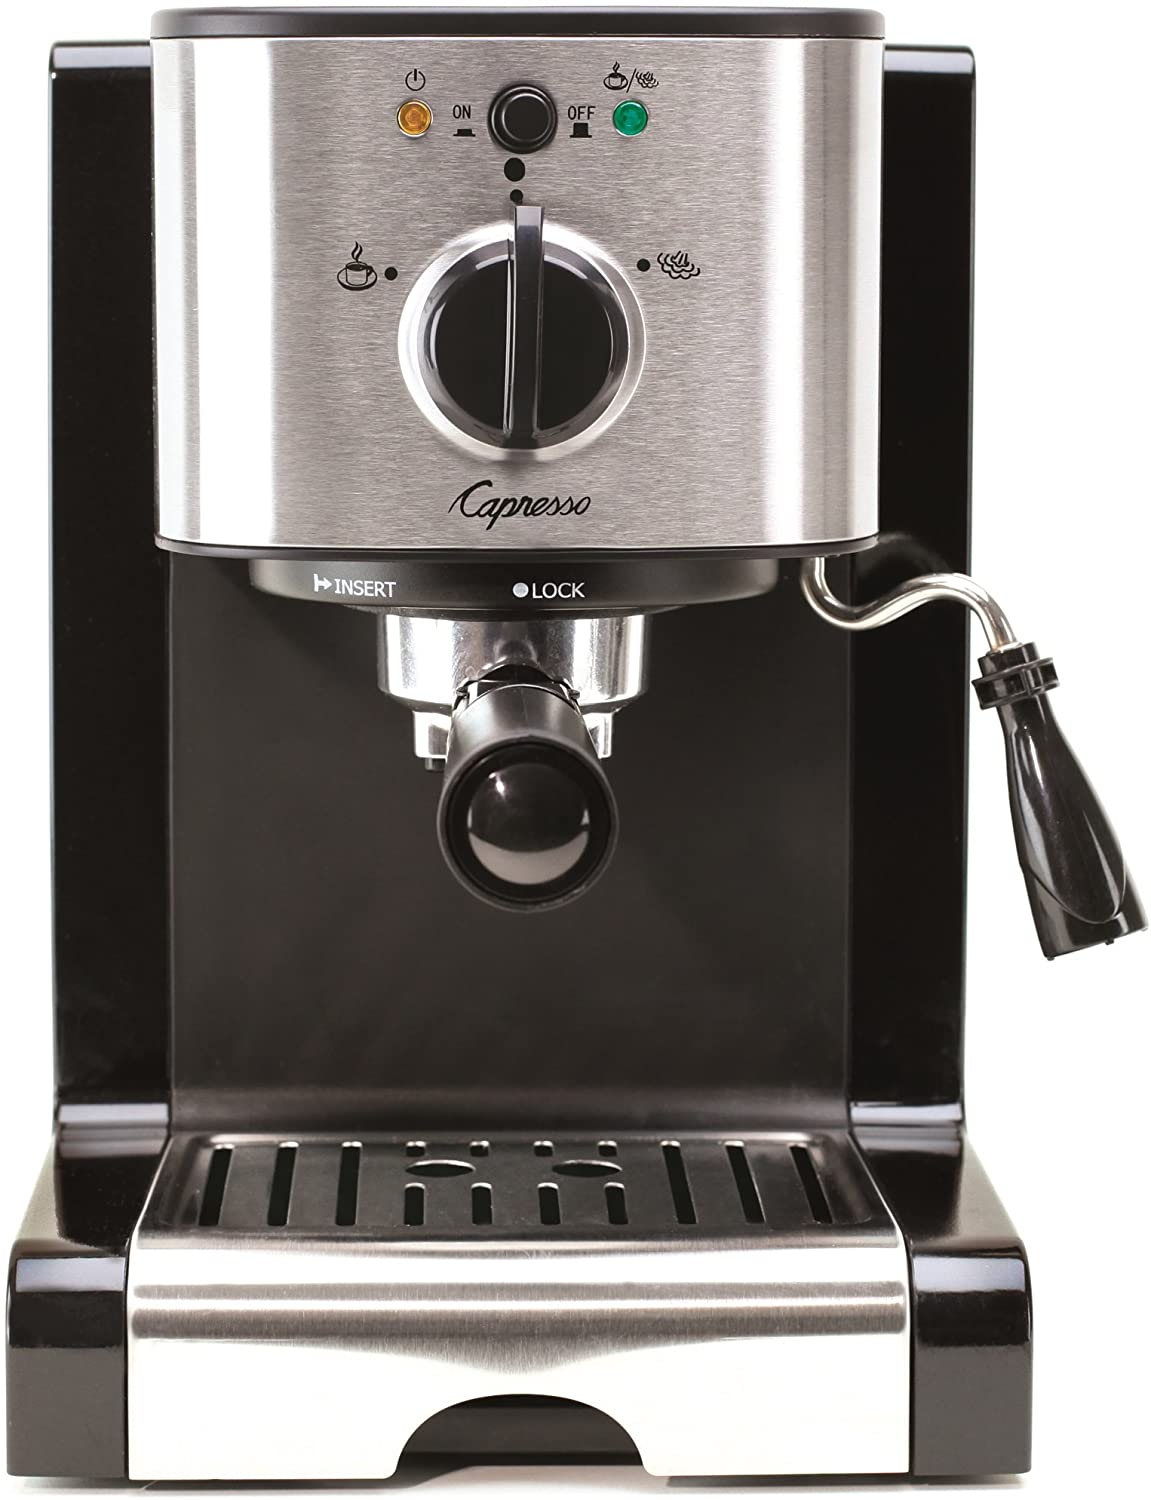 Capresso 116.04 Pump Espresso and Cappuccino Machine